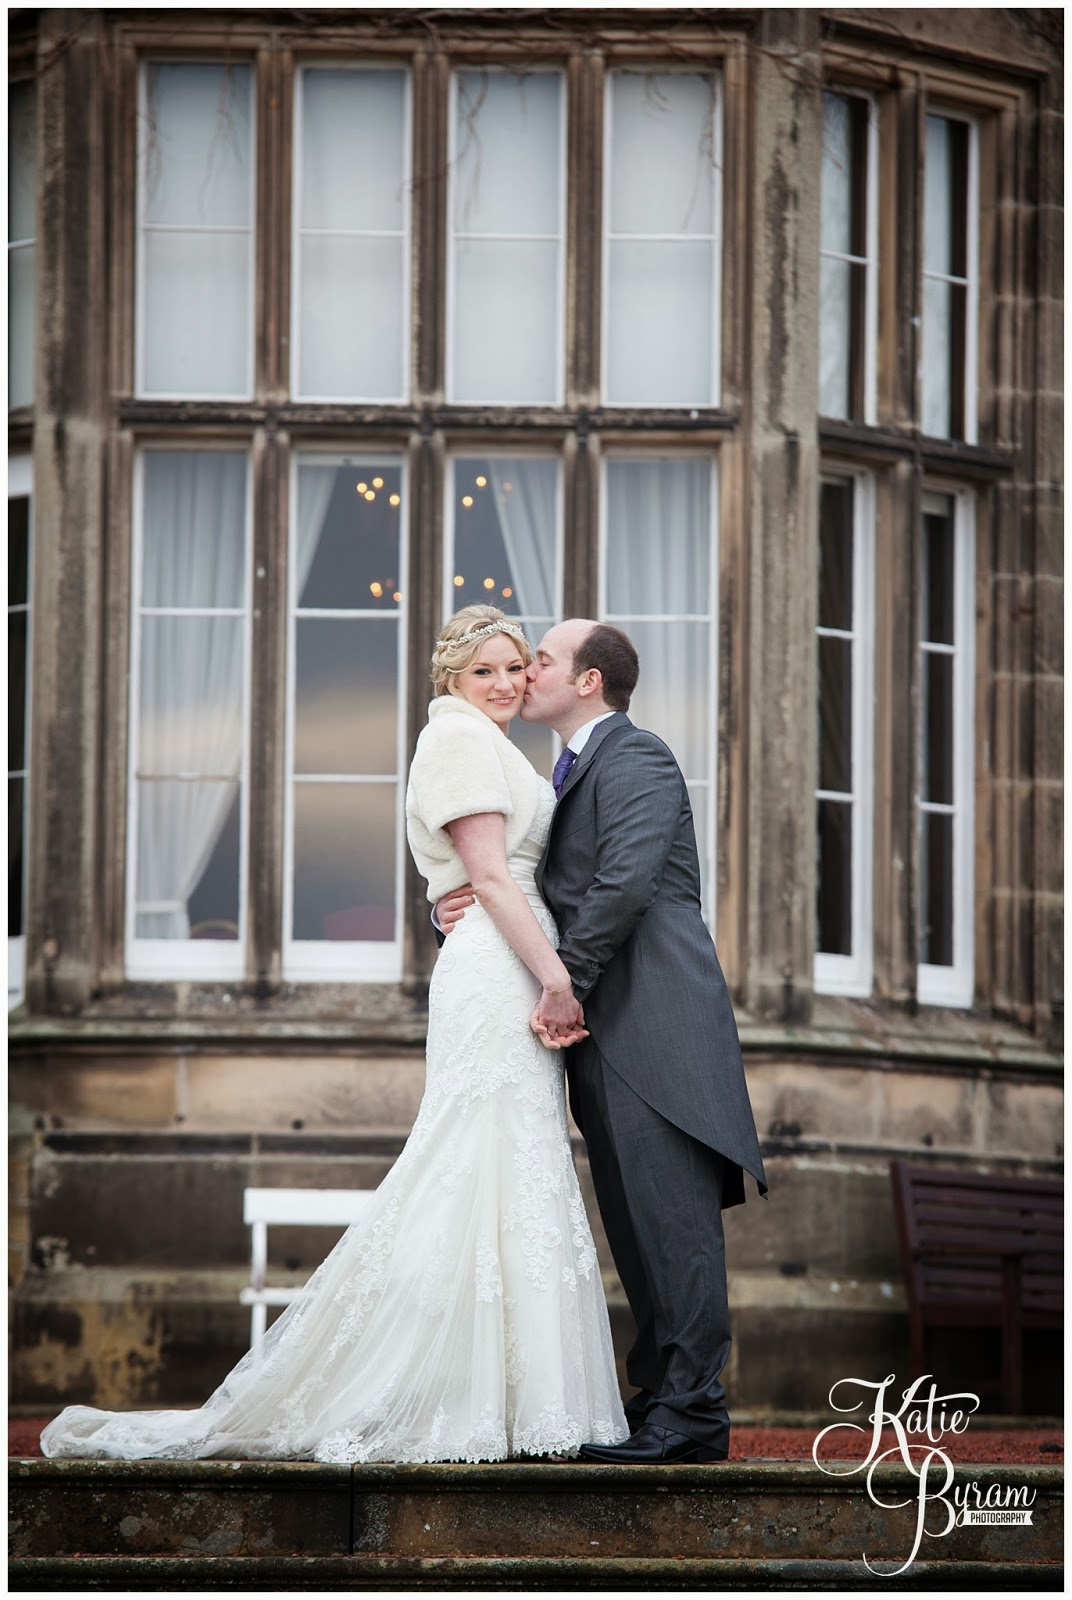 beach wedding north east, beach wedding, druridge bay, druridge bay wedding, northumberland coast wedding, bamburgh castle wedding, justin alexander dress, lisa cameron hair, matfen hall wedding, bride and groom, st oswalds church wall, katie byram photography